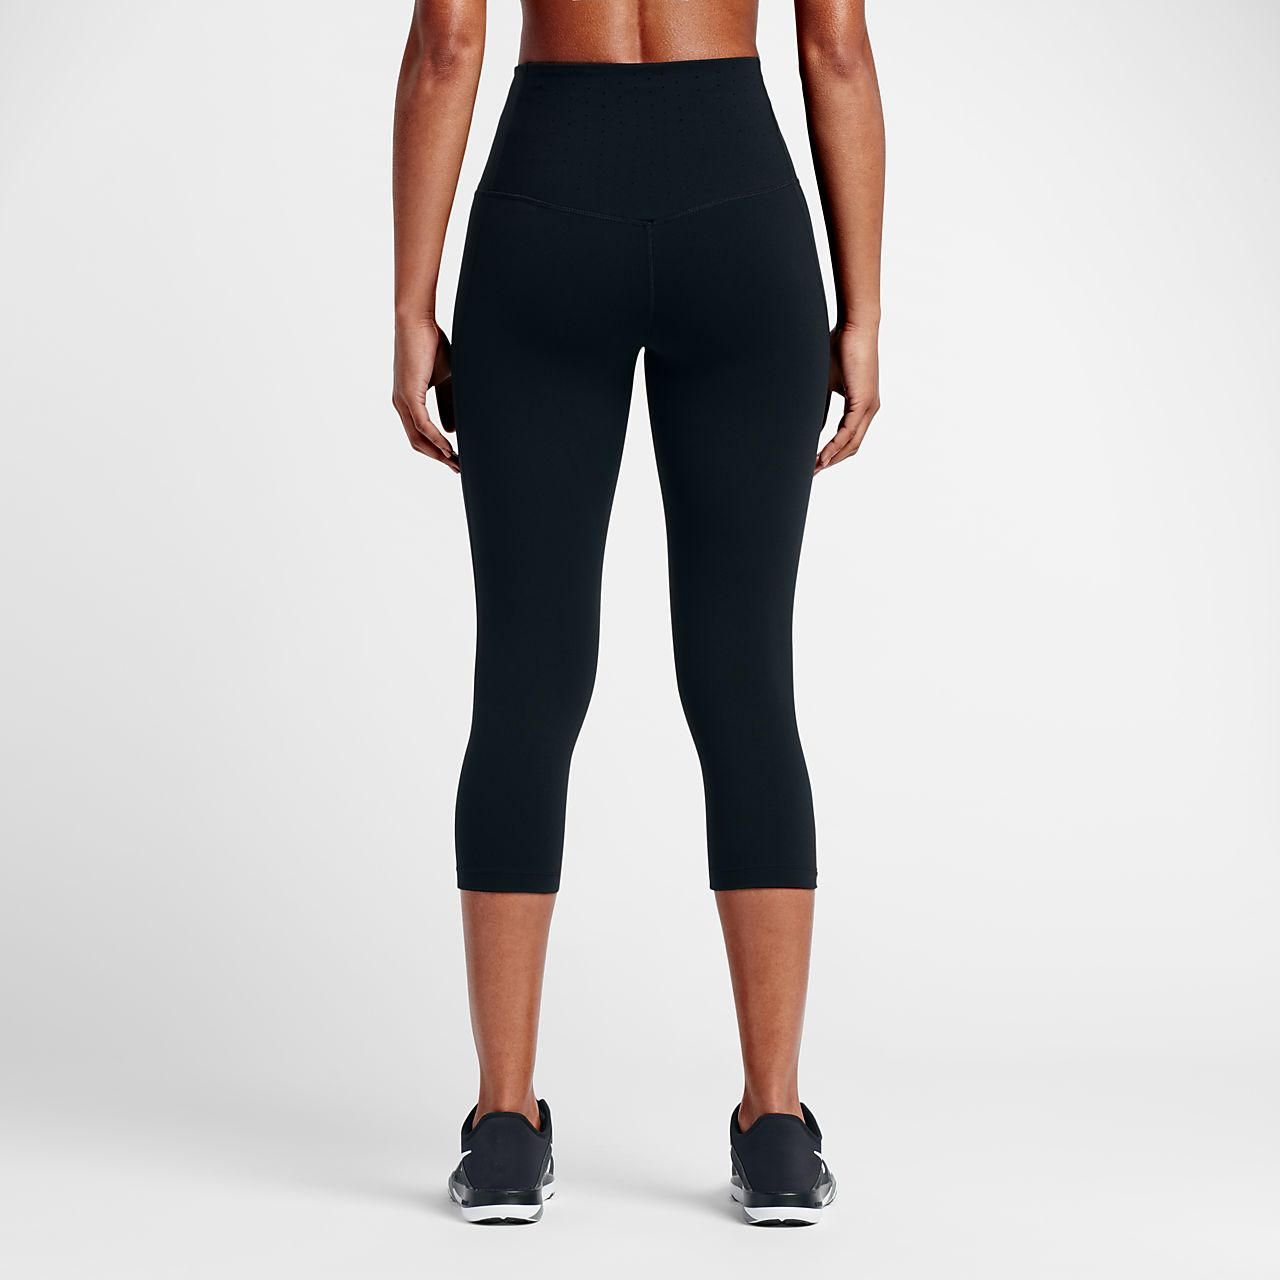 Nike Womens Training Capris - Nike Legendary Tight Charcoal Heather/Black/Black H59y7097